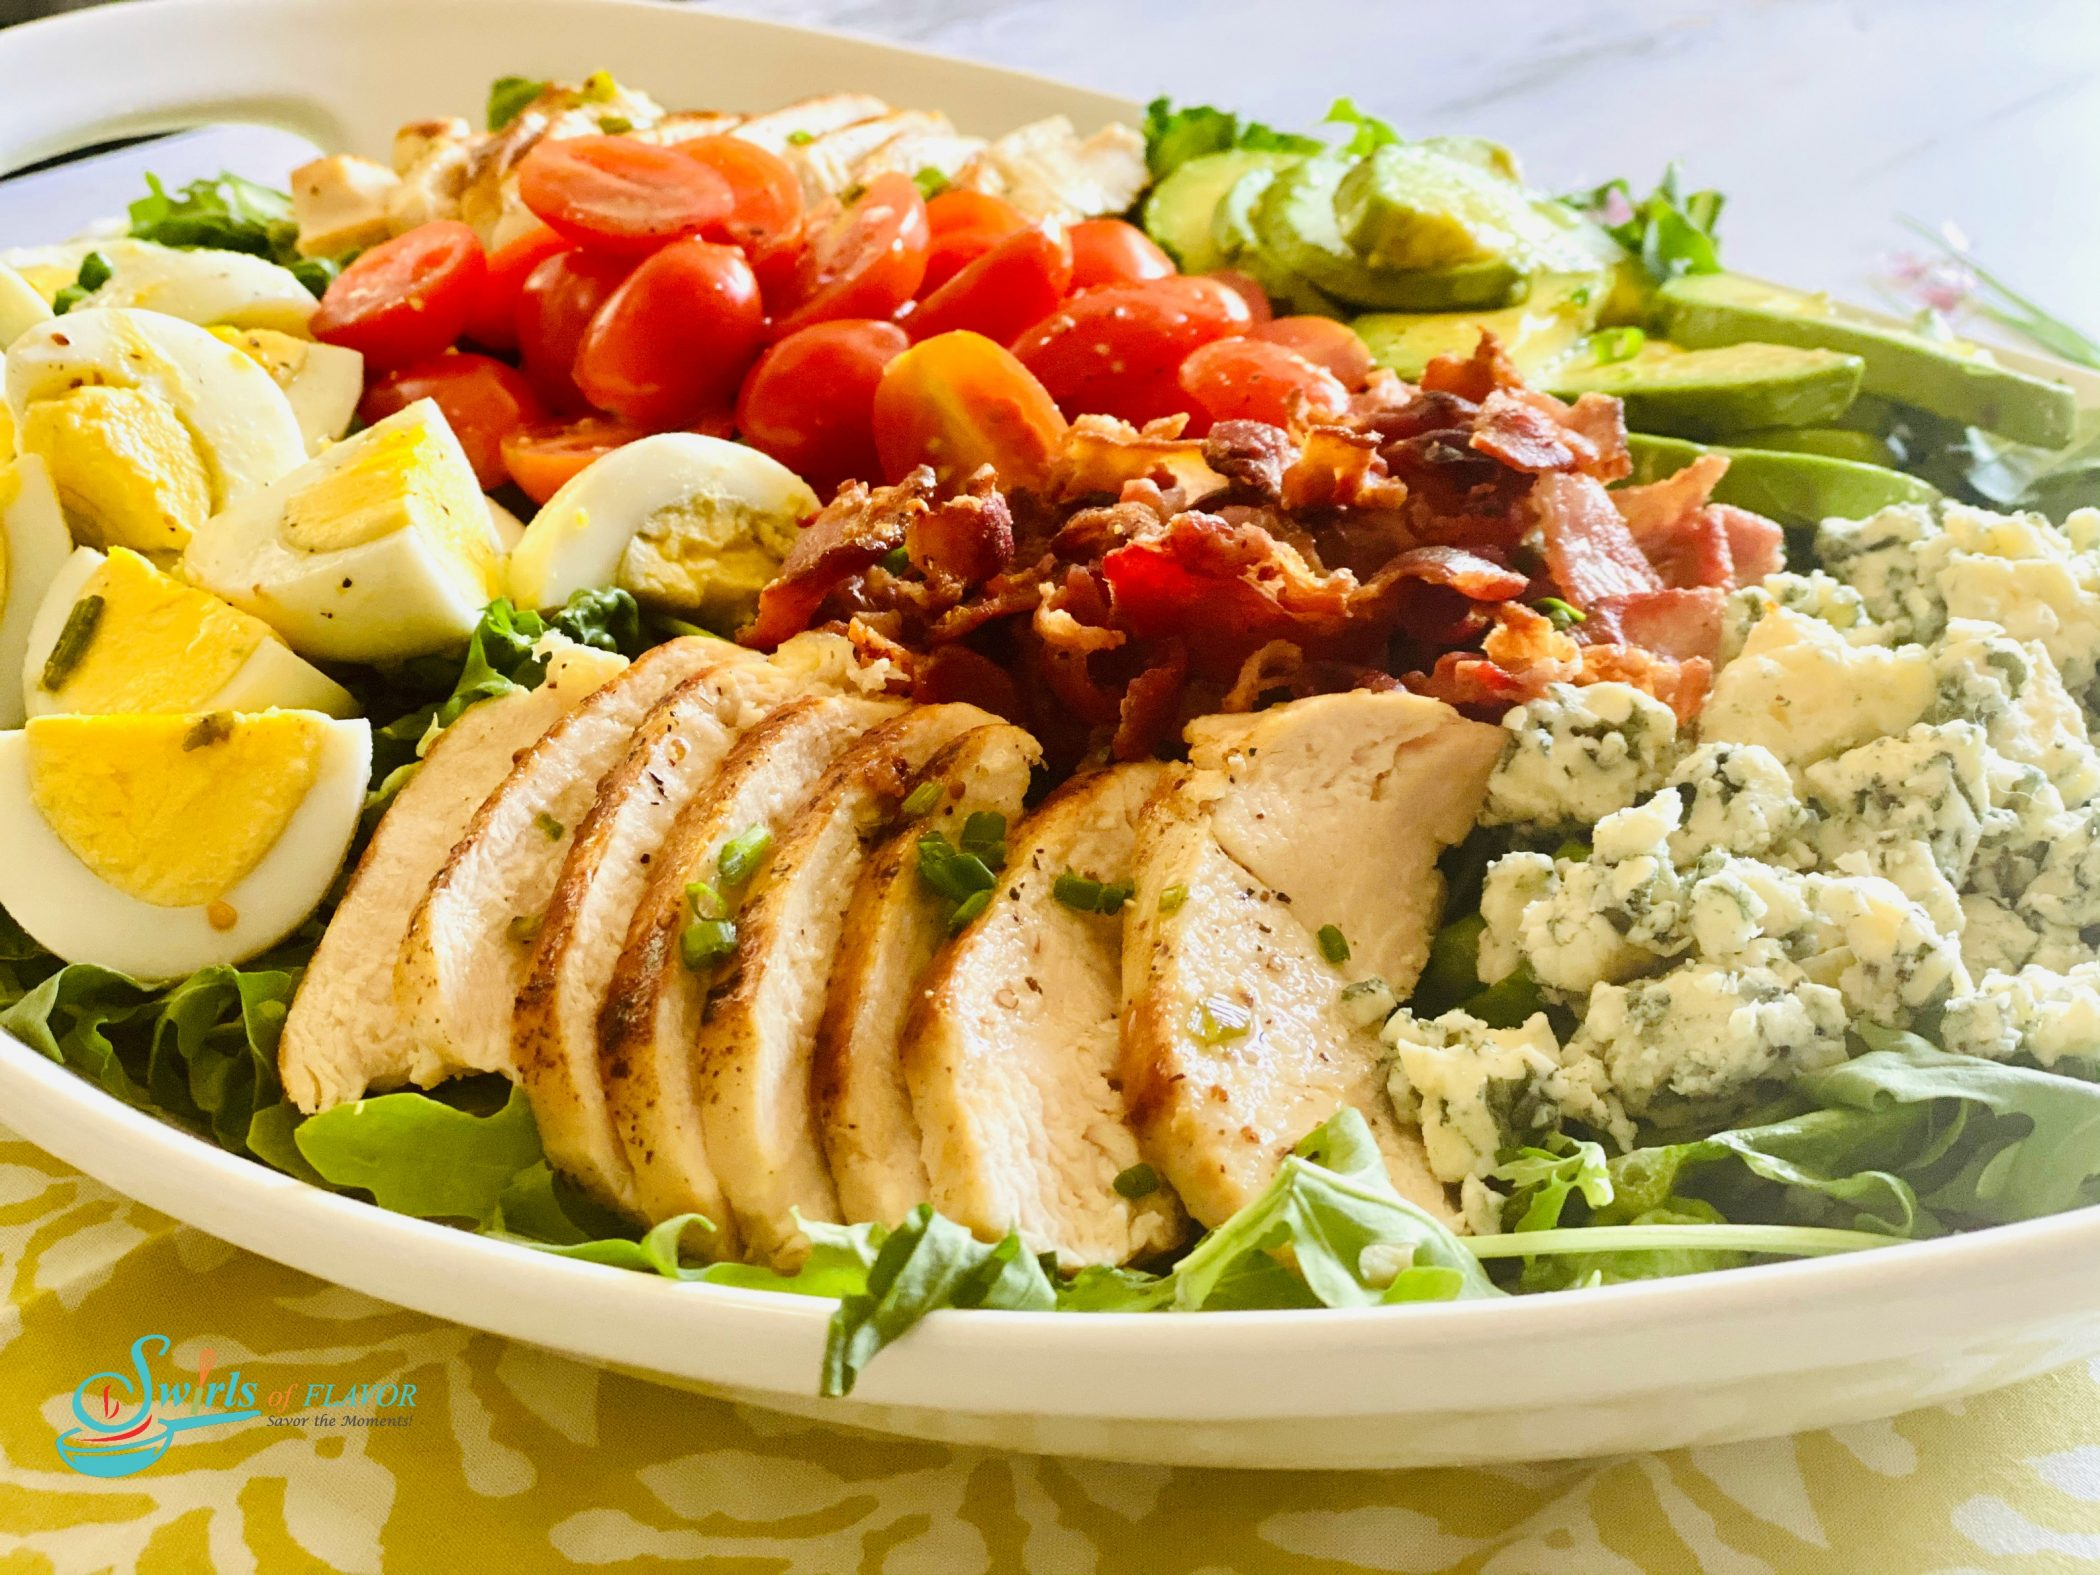 White oval platter filled with a Cobb Salad